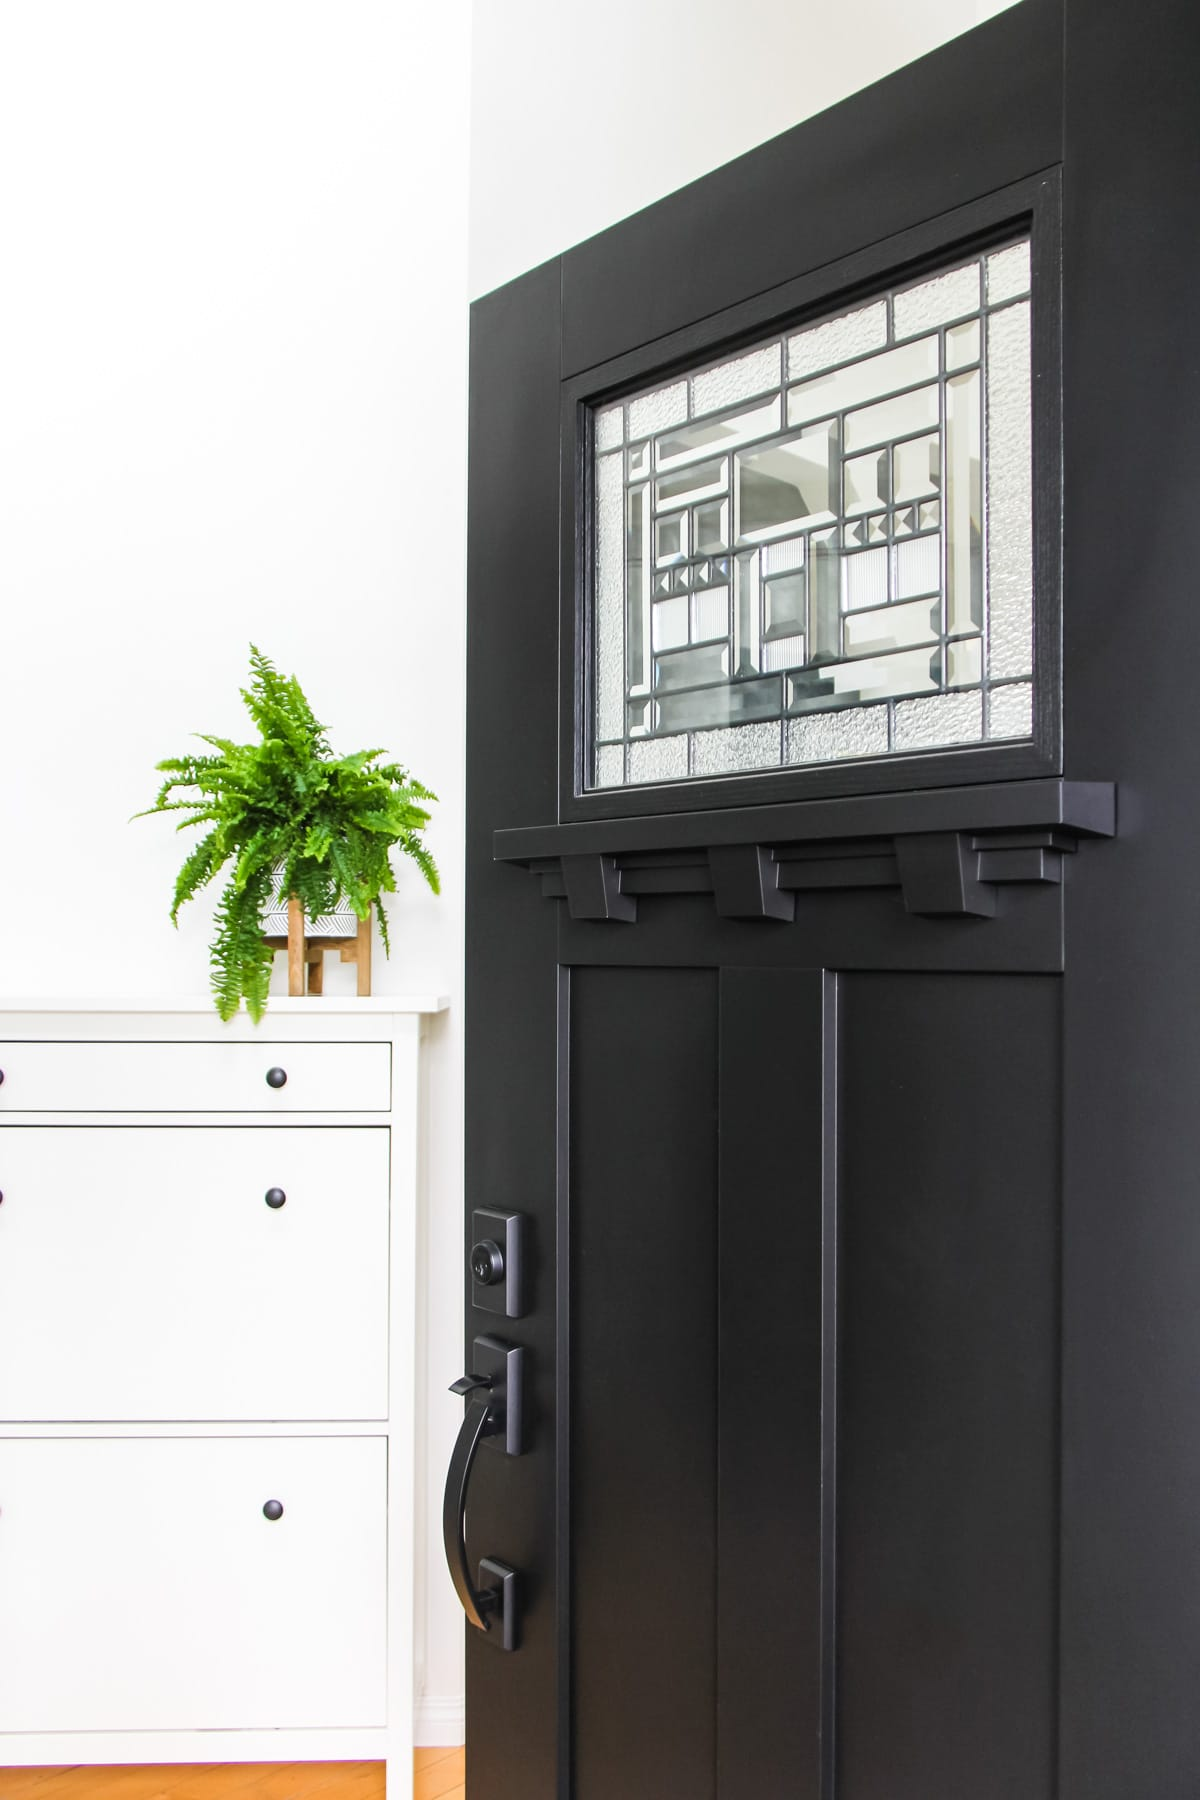 a black craftsman door opened into a home. in the background is a green fern plant